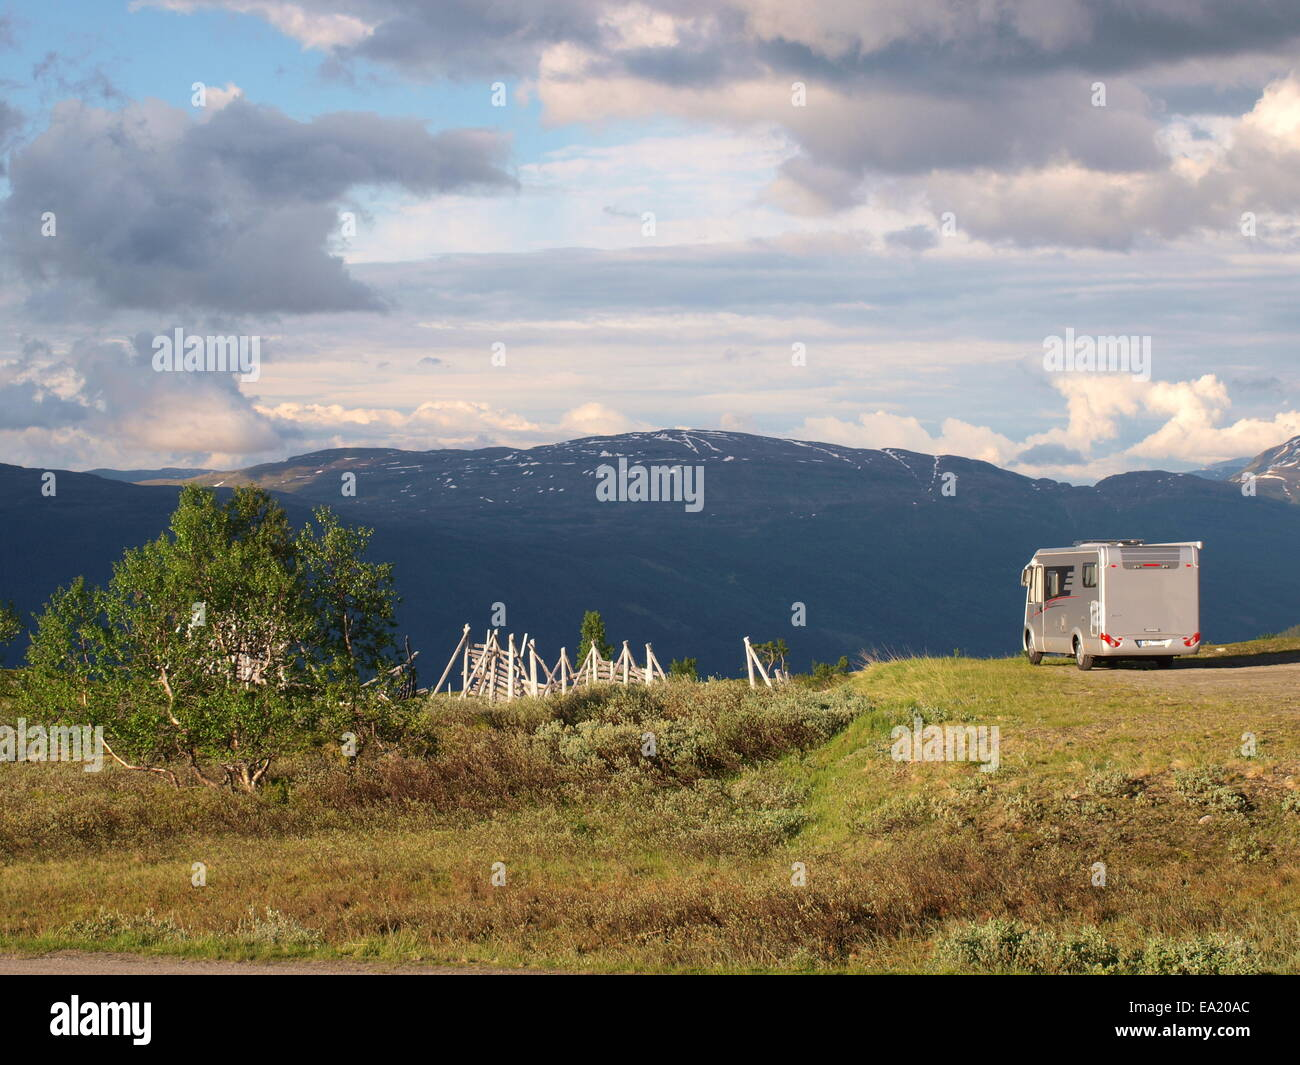 Mobile home at the Korgfjellet in Norway Stock Photo: 75032228 - Alamy